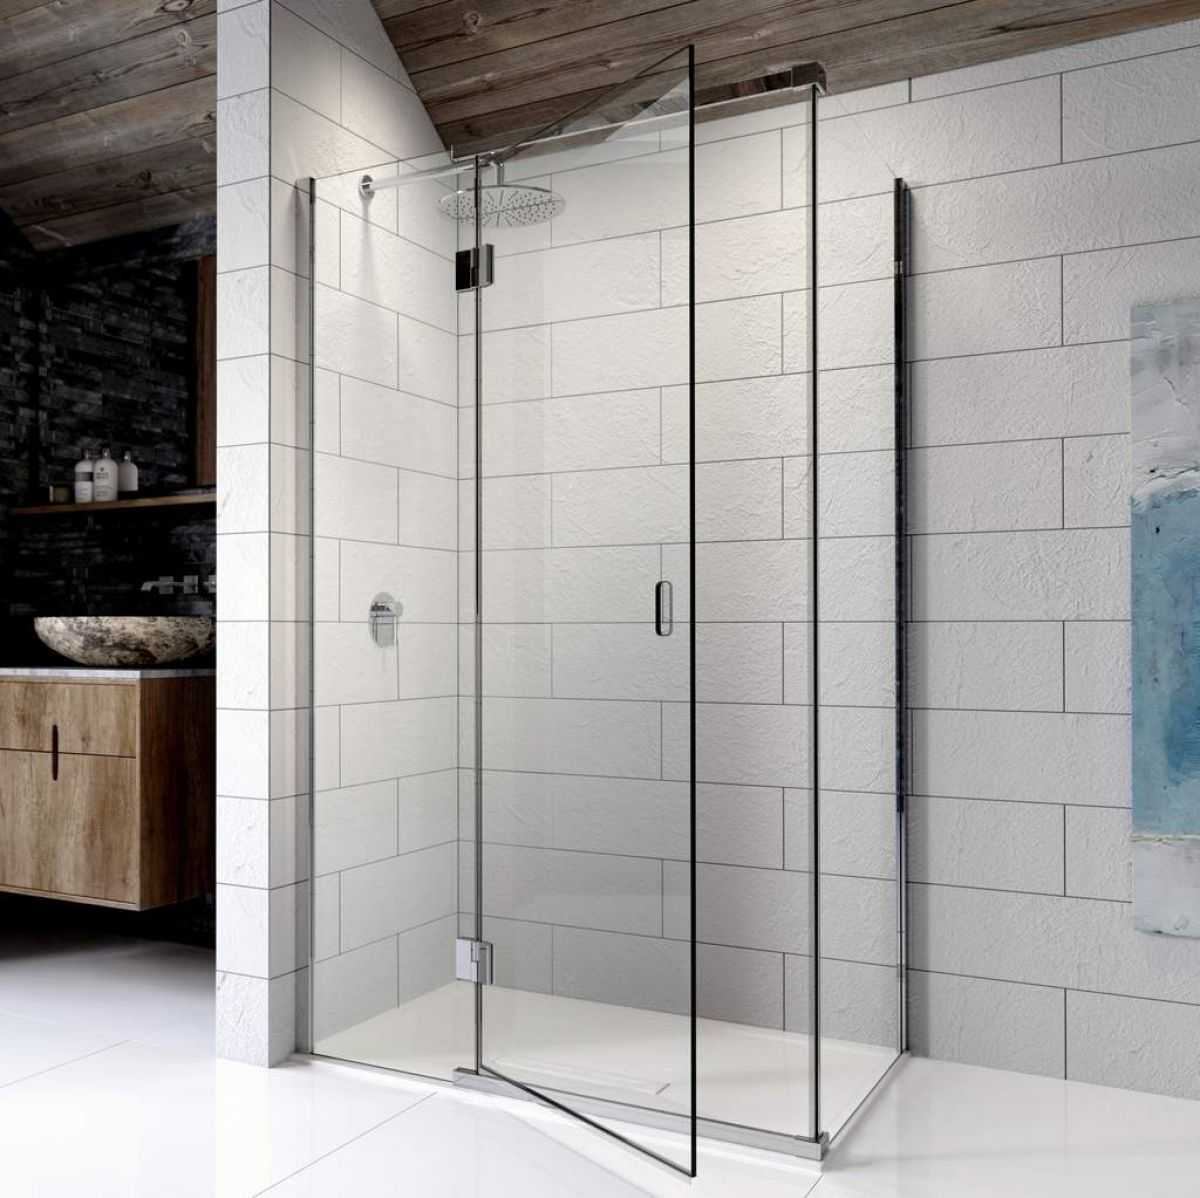 Kudos pinnacle 8 hinged shower door for corner uk bathrooms for 1200 door